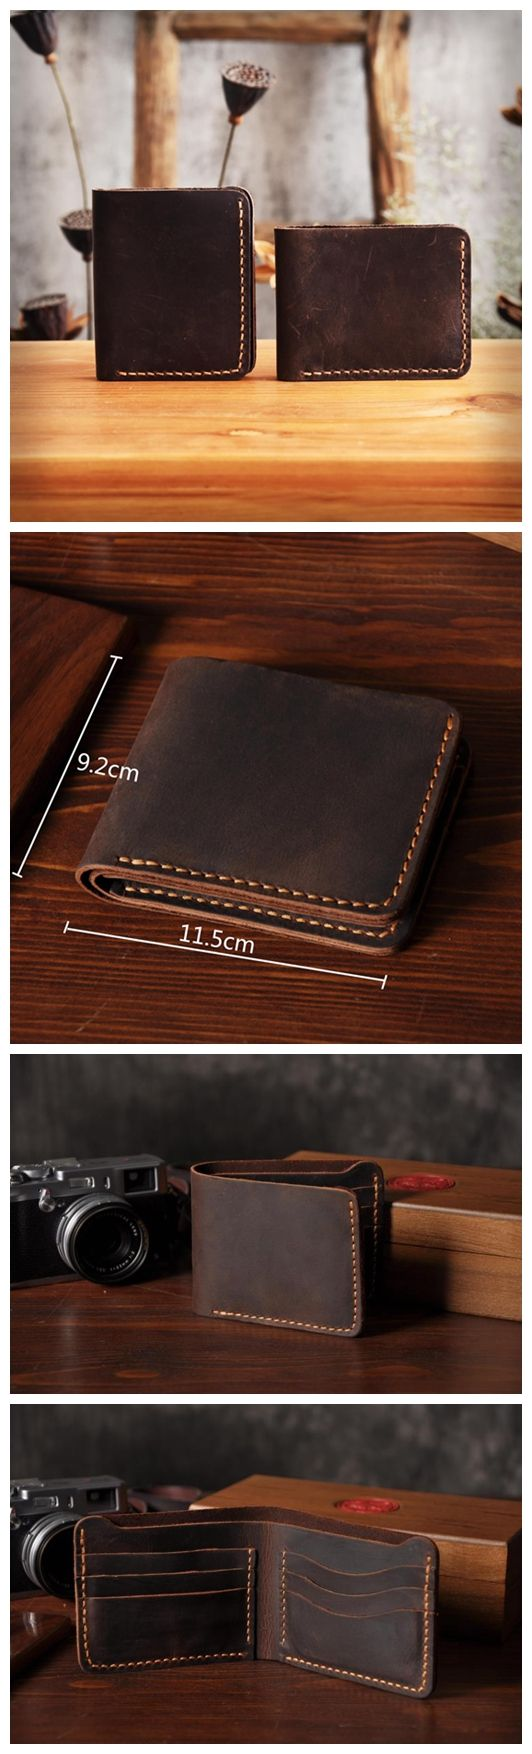 Handmade Men's Long Leather Wallet Money Purse Card Holder MT03 Overview: Design: Vintage Leather Men Long Wallet In Stock: Ready to Ship (2-4 days) Include: Only Wallet Custom: No Color: Dark Brown L http://www.deal-shop.com/product/levaca-womens-long-sleeve-button-cowl-neck-casual-slim-tunic-tops-with-pockets/